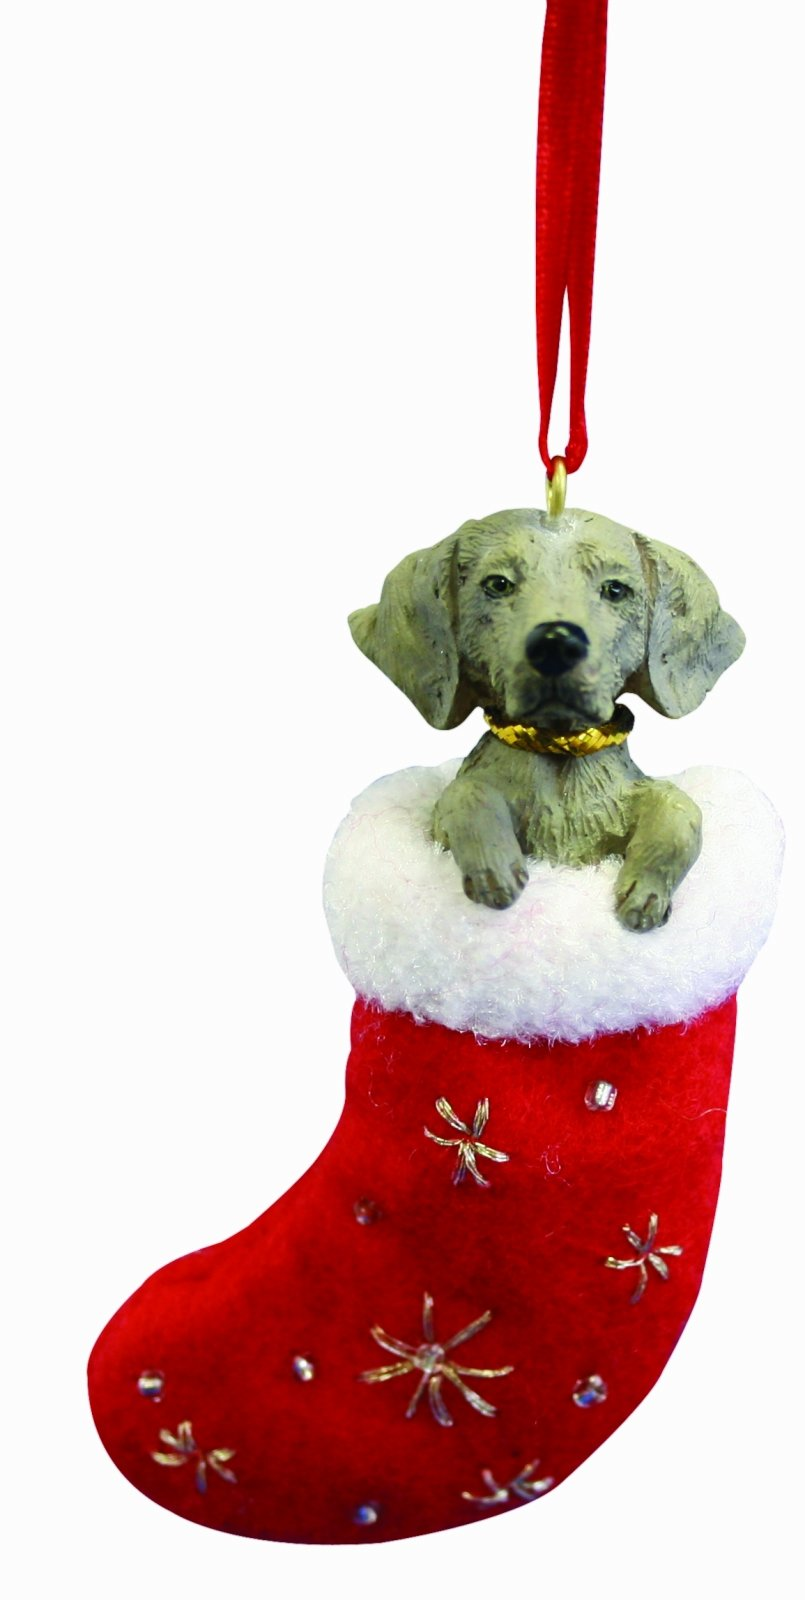 Amazon Com Weimaraner Christmas Stocking Ornament With Santa S Little Pals Hand Painted And Stitched Detail Pet Supplies